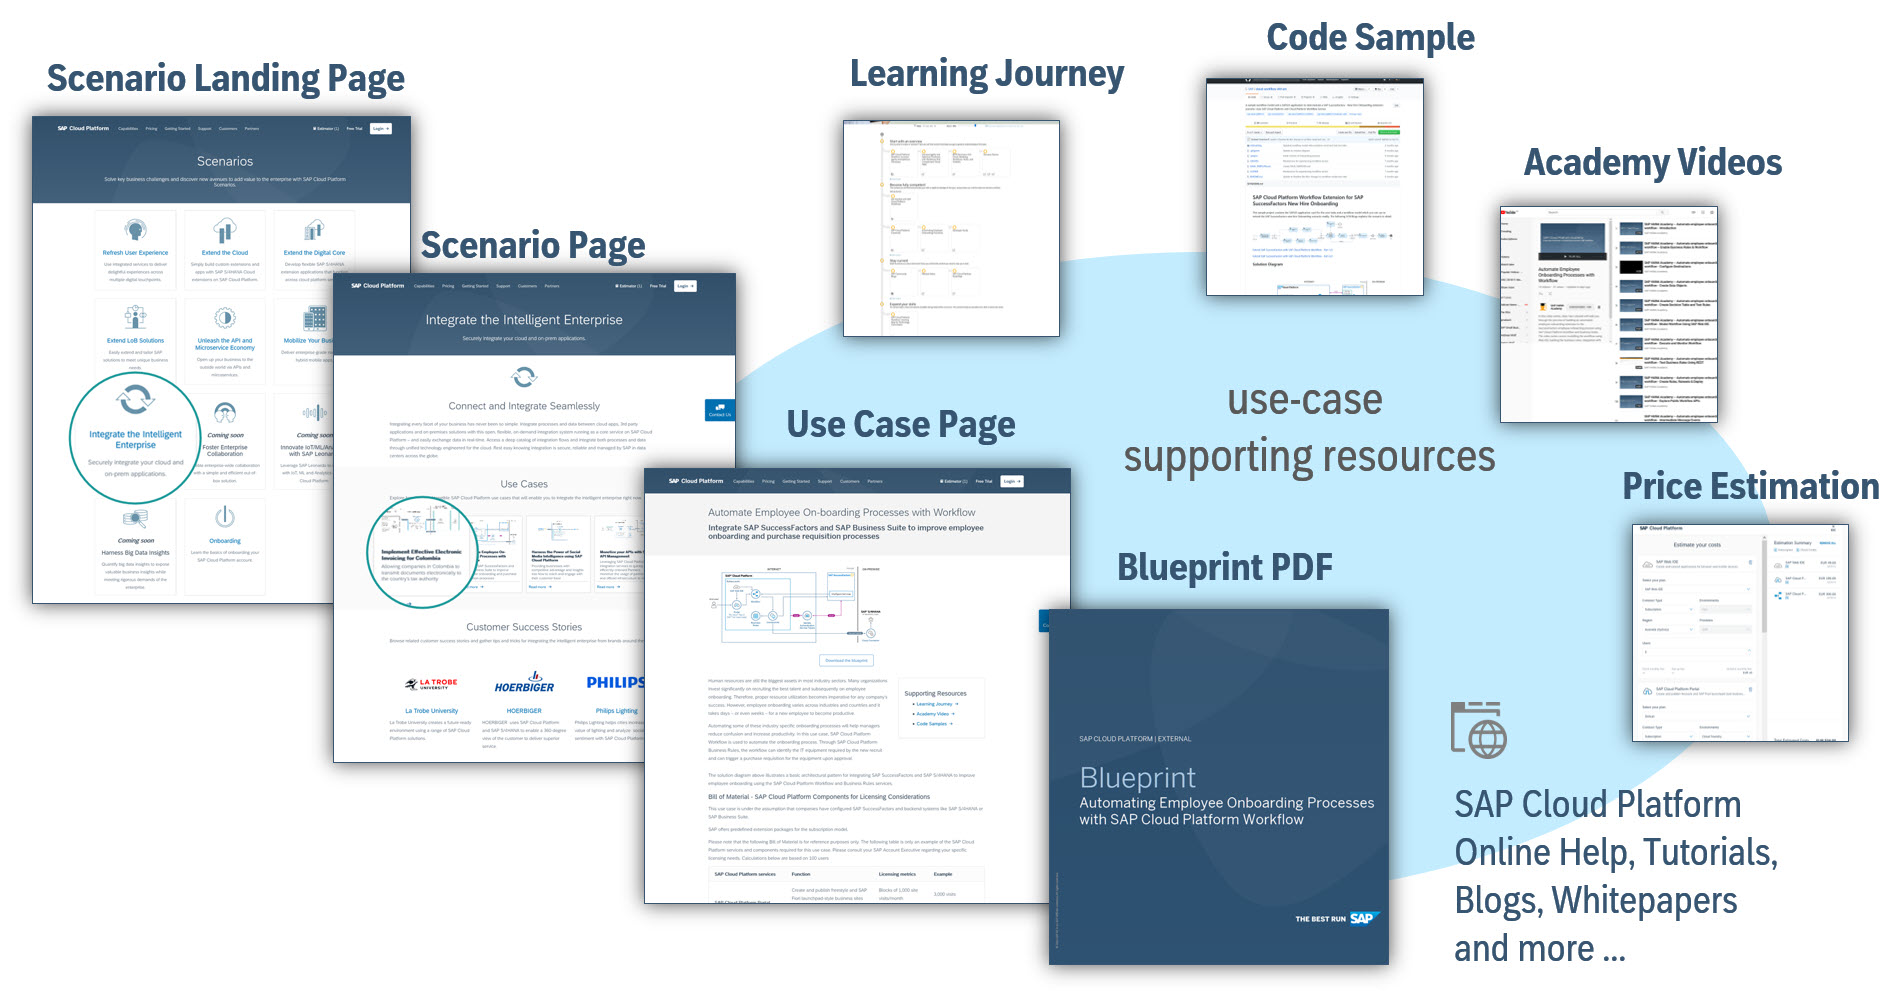 New on sap cloud platform website scenario based enablement content the following diagram illustrates the model and terms of our new scenario based content offering that can be reached from the new scenario landing page on malvernweather Gallery